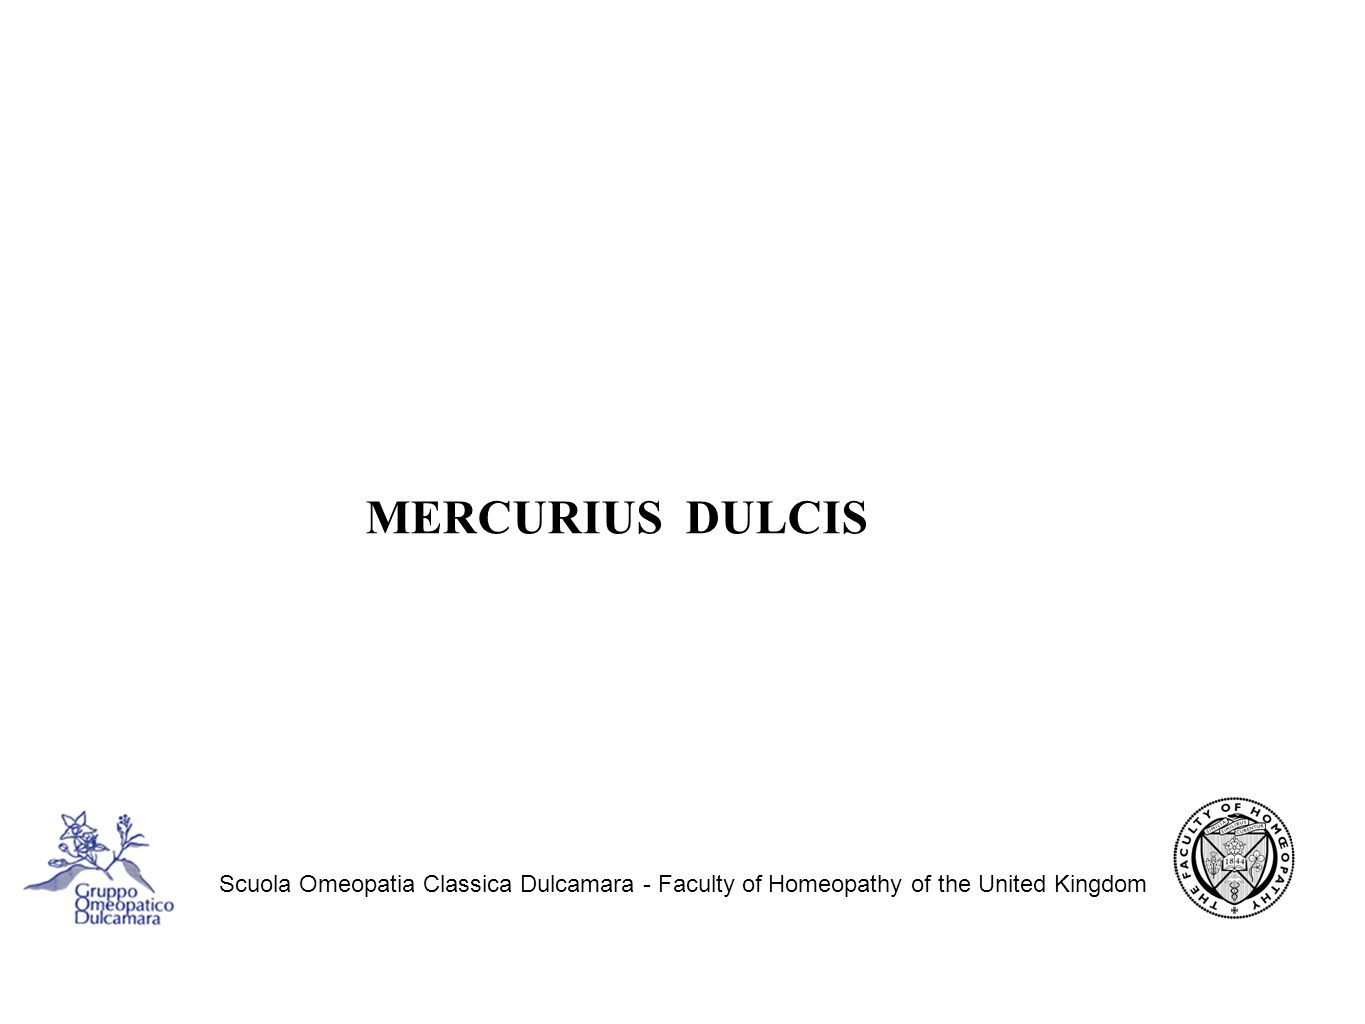 MERCURIUS DULCIS Scuola Omeopatia Classica Dulcamara - Faculty of Homeopathy of the United Kingdom